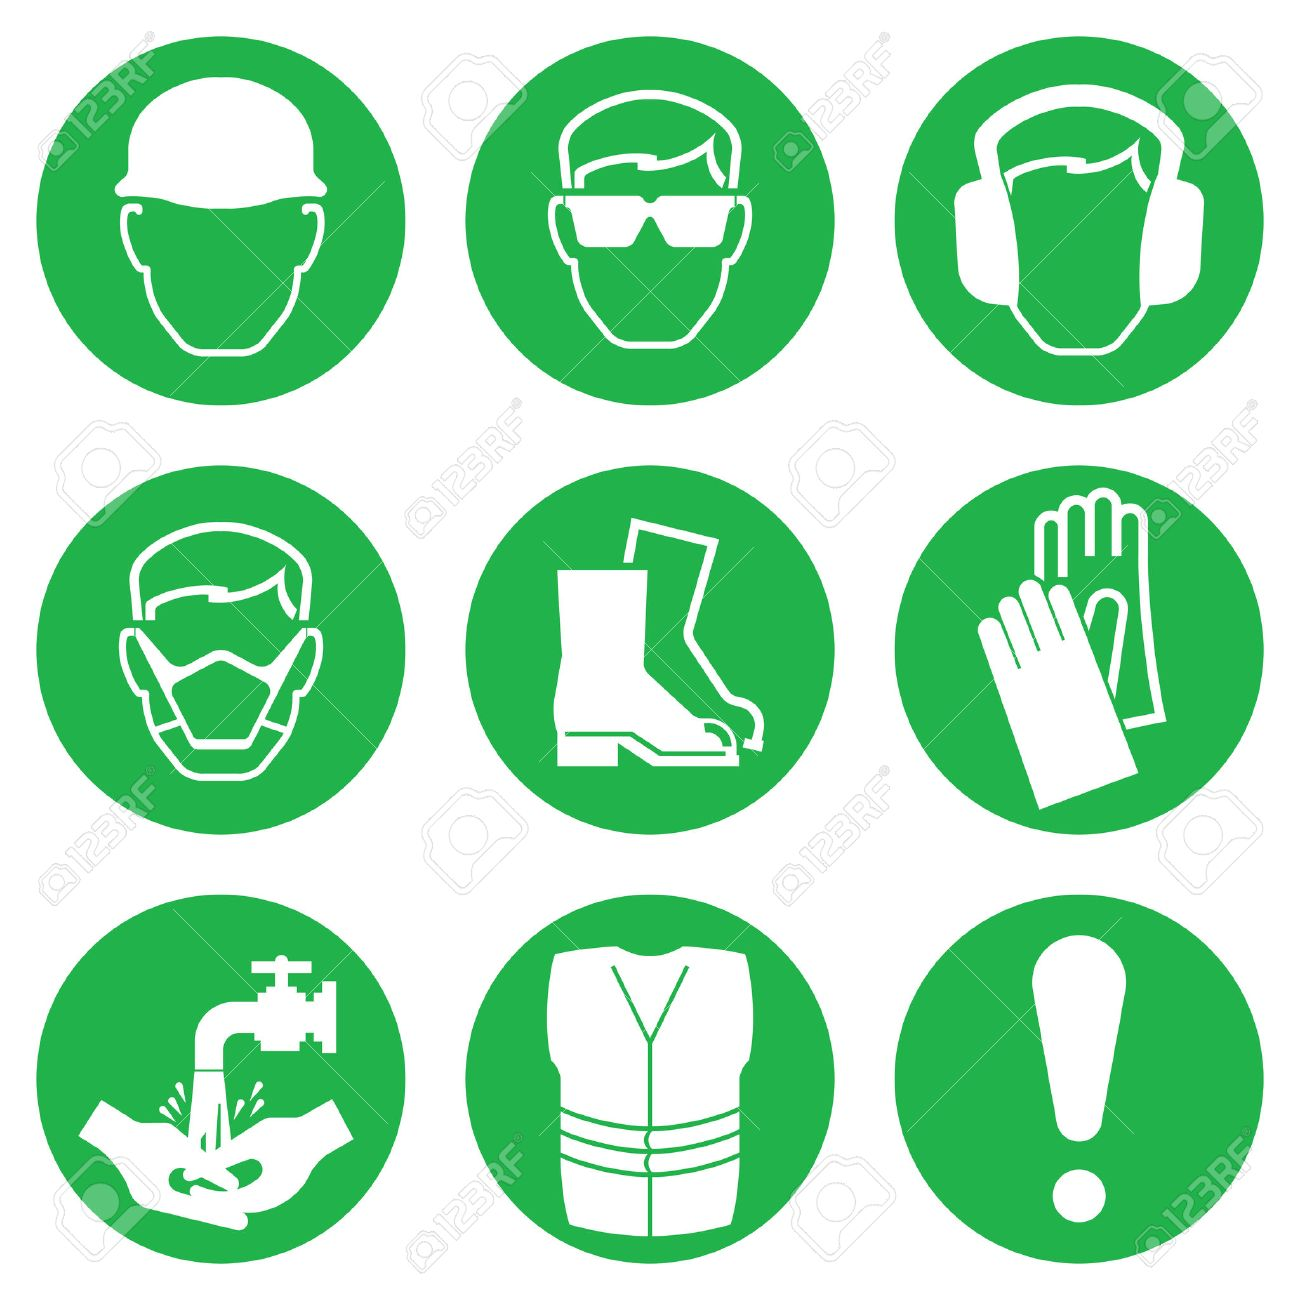 309531 Safety Signs Stock Vector Illustration And Royalty Free